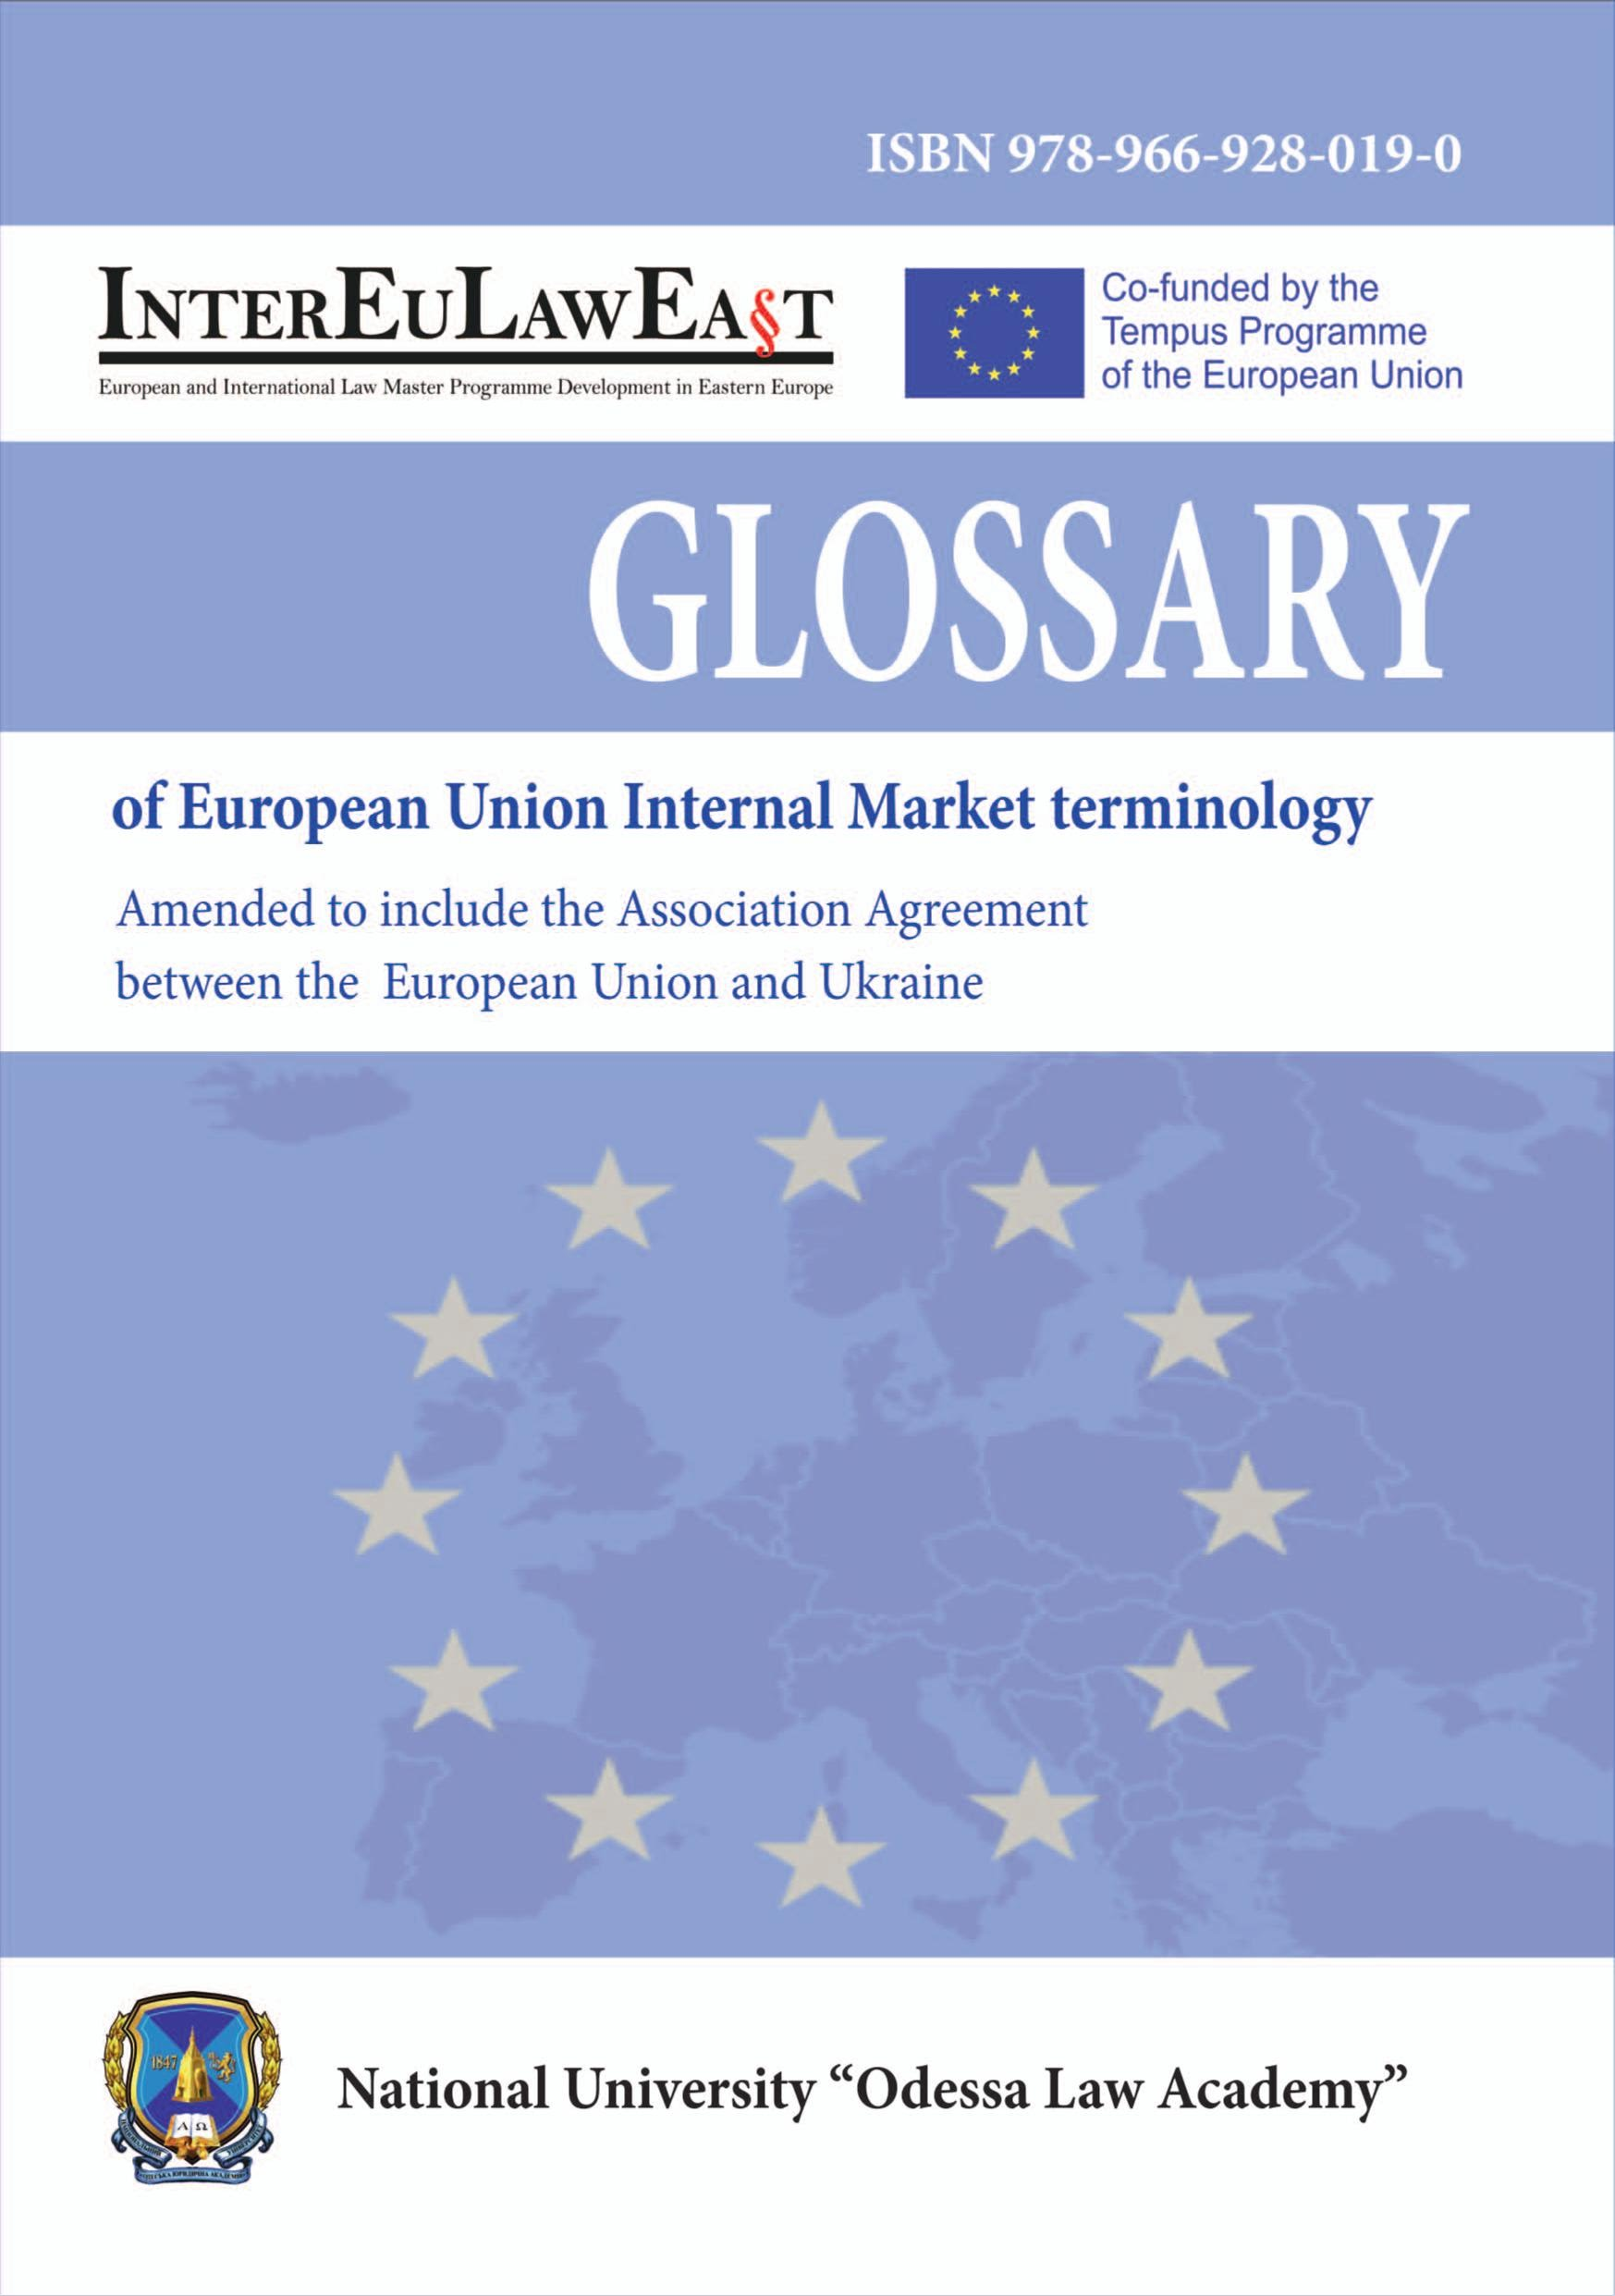 http://iele.bazick.com/books/289-glossary-of-eu-internal-market-terminology